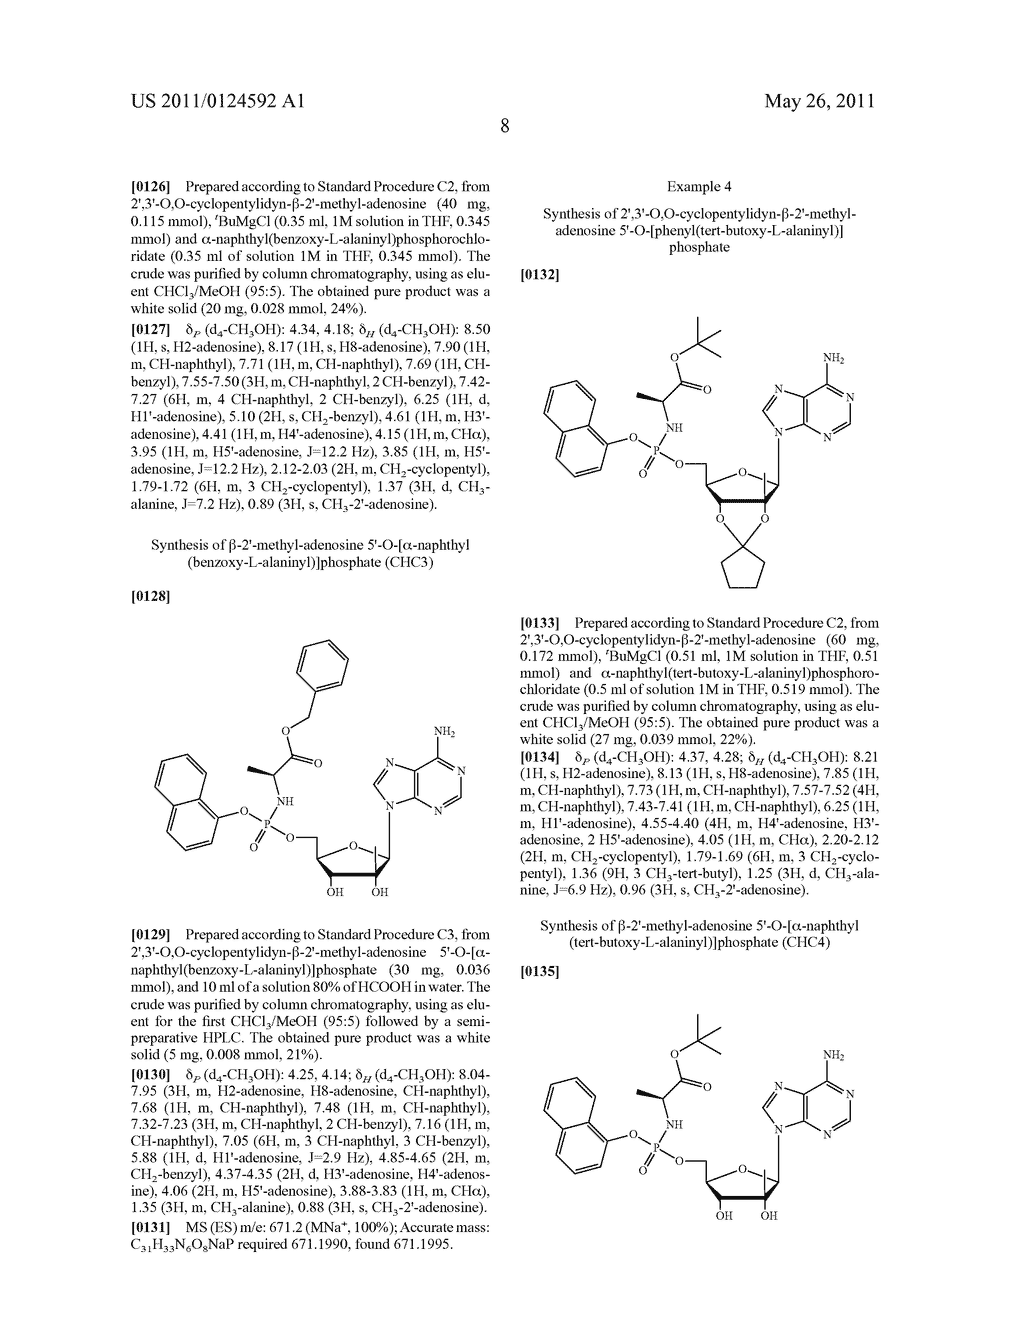 NUCLEOSIDE ARYL PHOSPHORAMIDATES AND THEIR USE AS ANTI-VIRAL AGENTS FOR THE TREATMENT OF HEPATITUS C VIRUS - diagram, schematic, and image 09